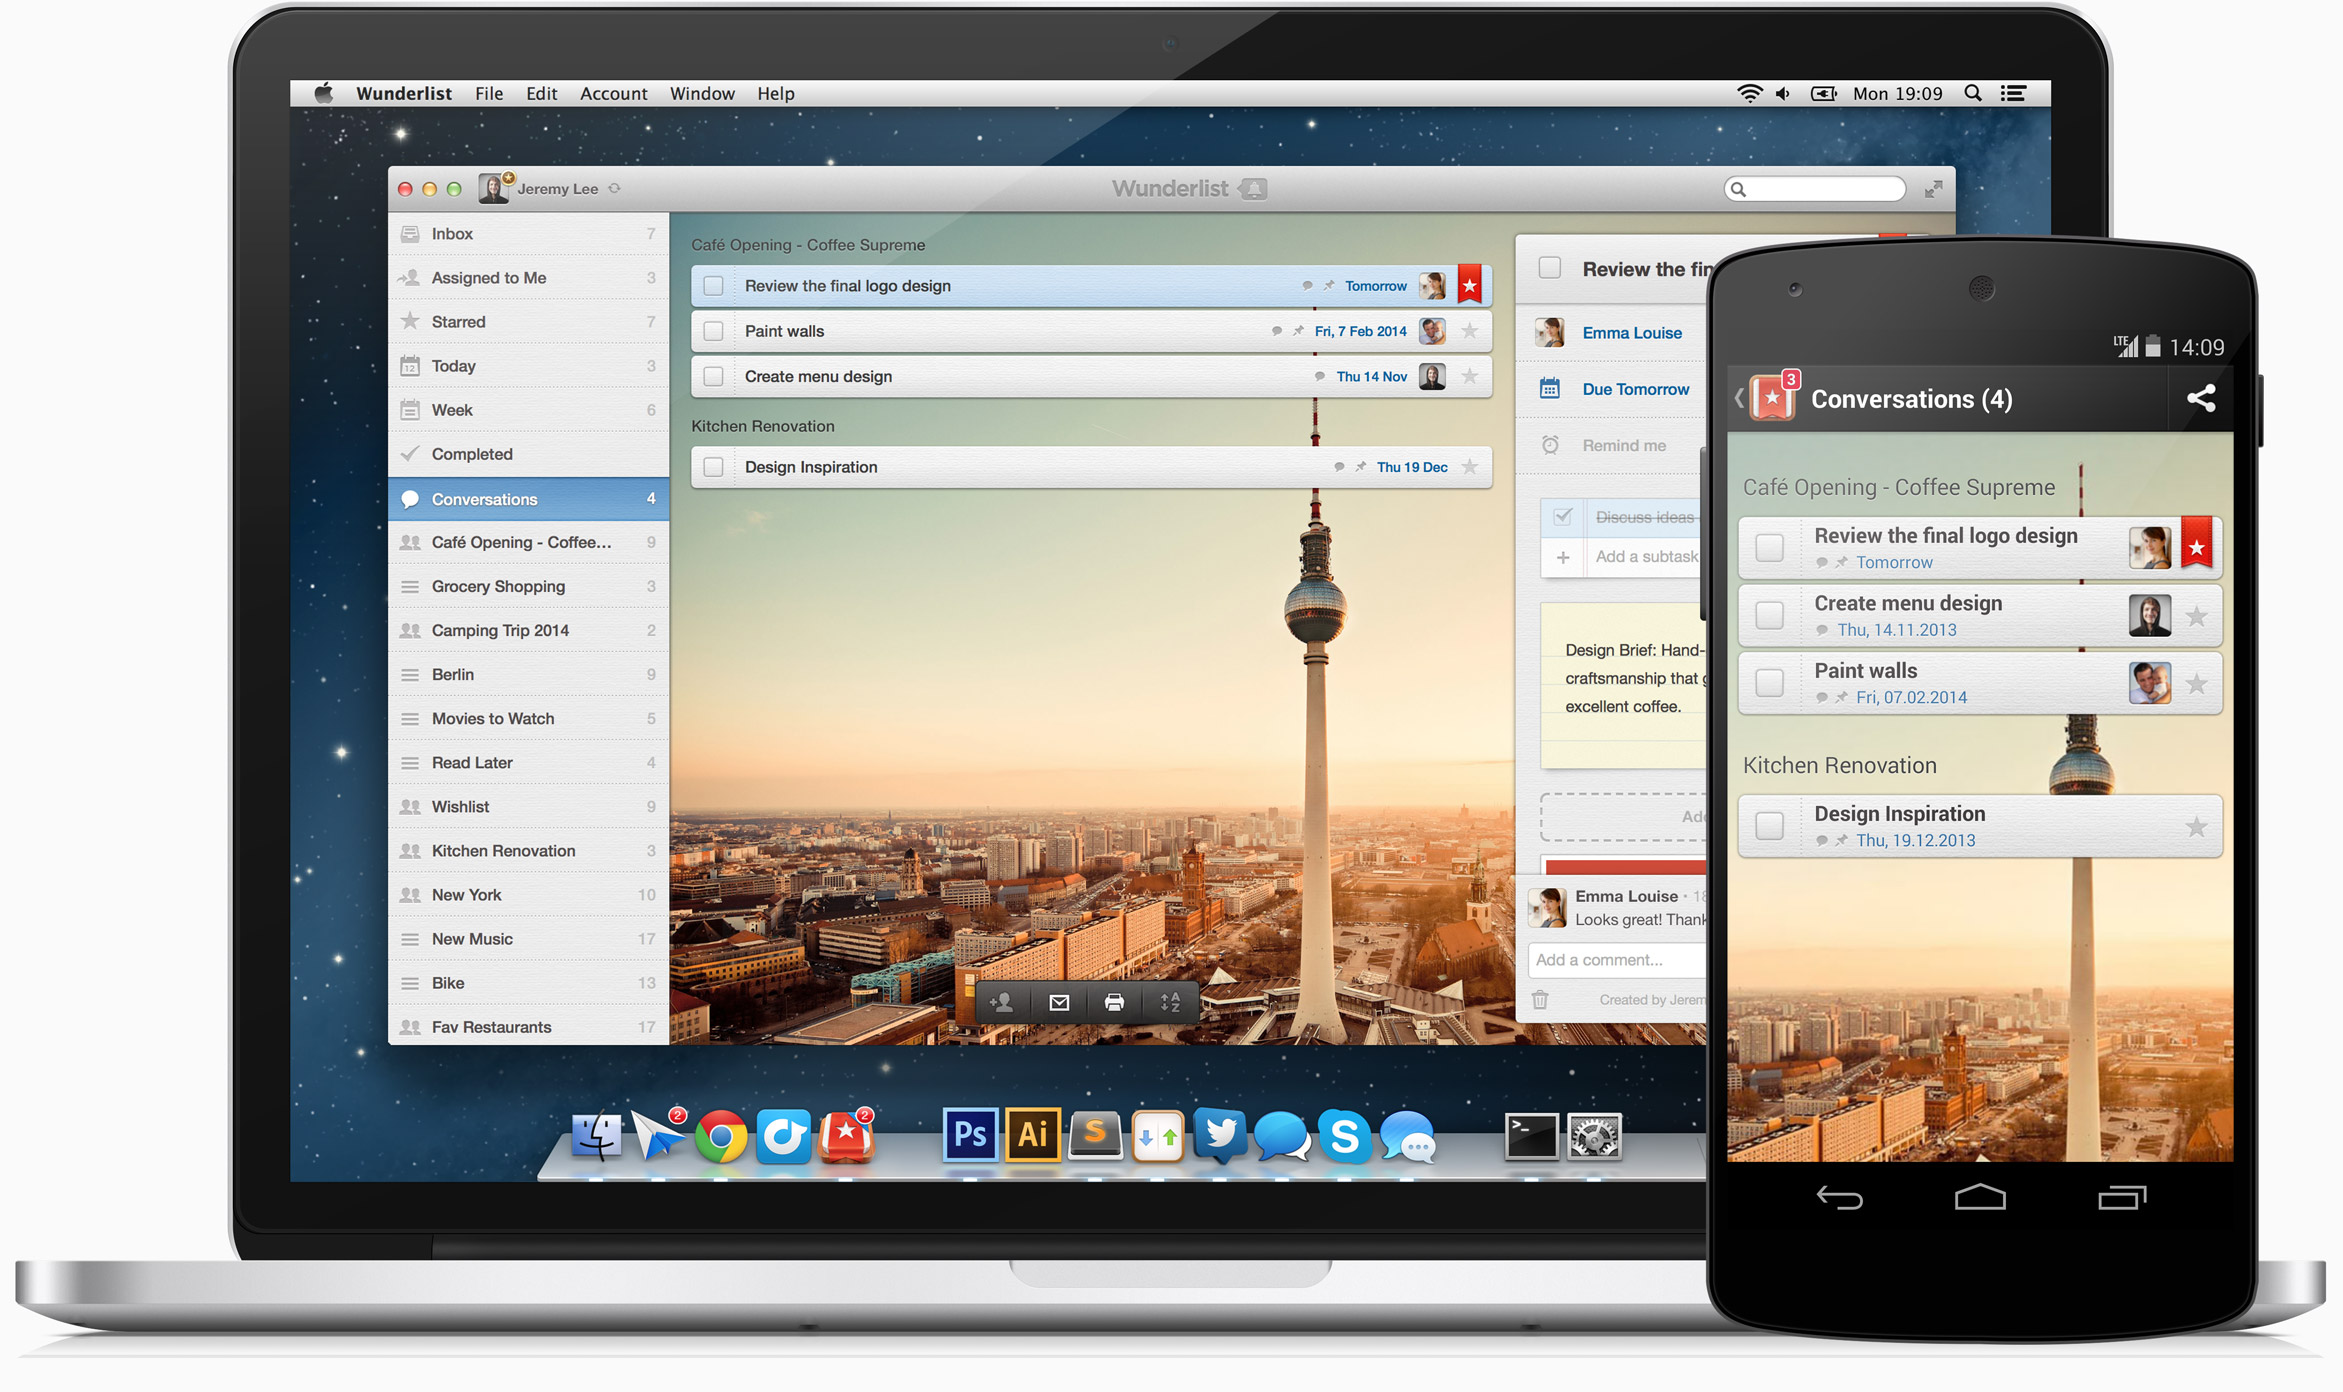 wunderlist online work management application